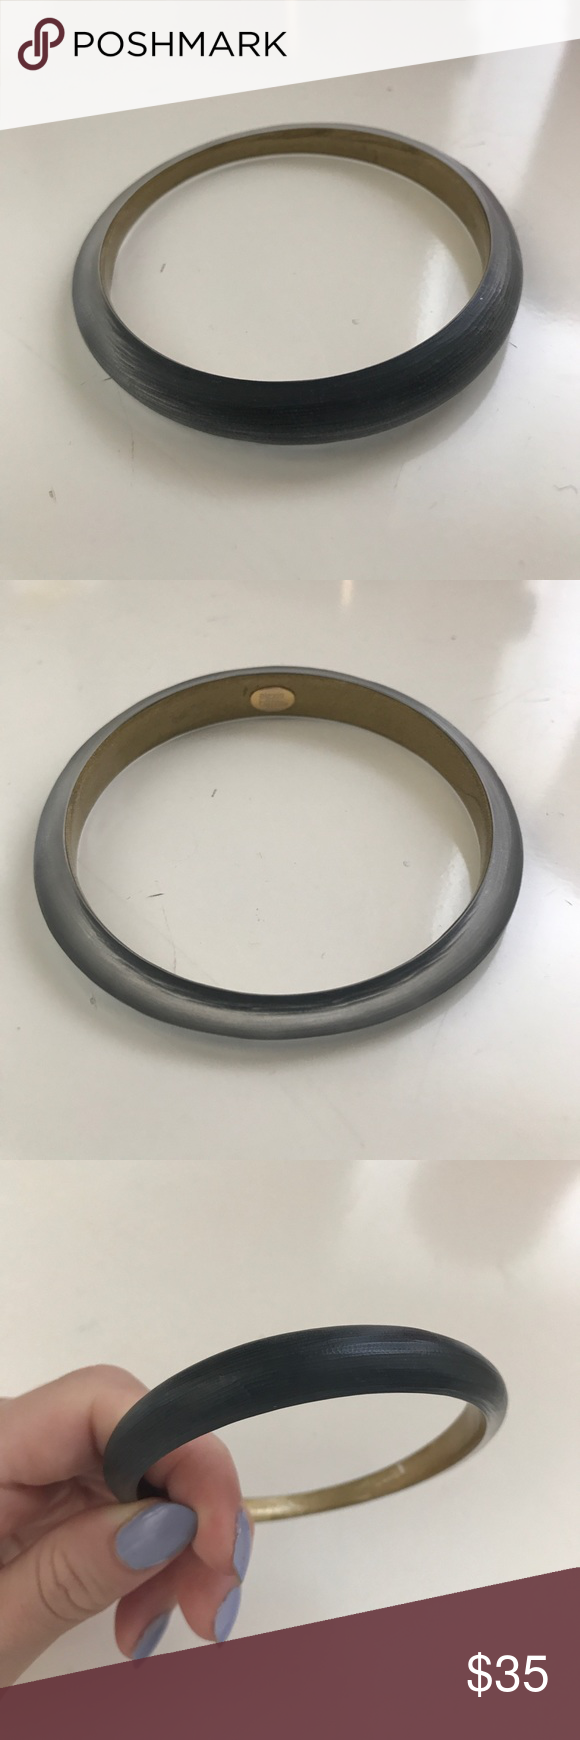 Alexis Bittar Black Lucite Skinny Taper Bangle Perfect condition. No signs of wear. Alexis Bittar Jewelry Bracelets